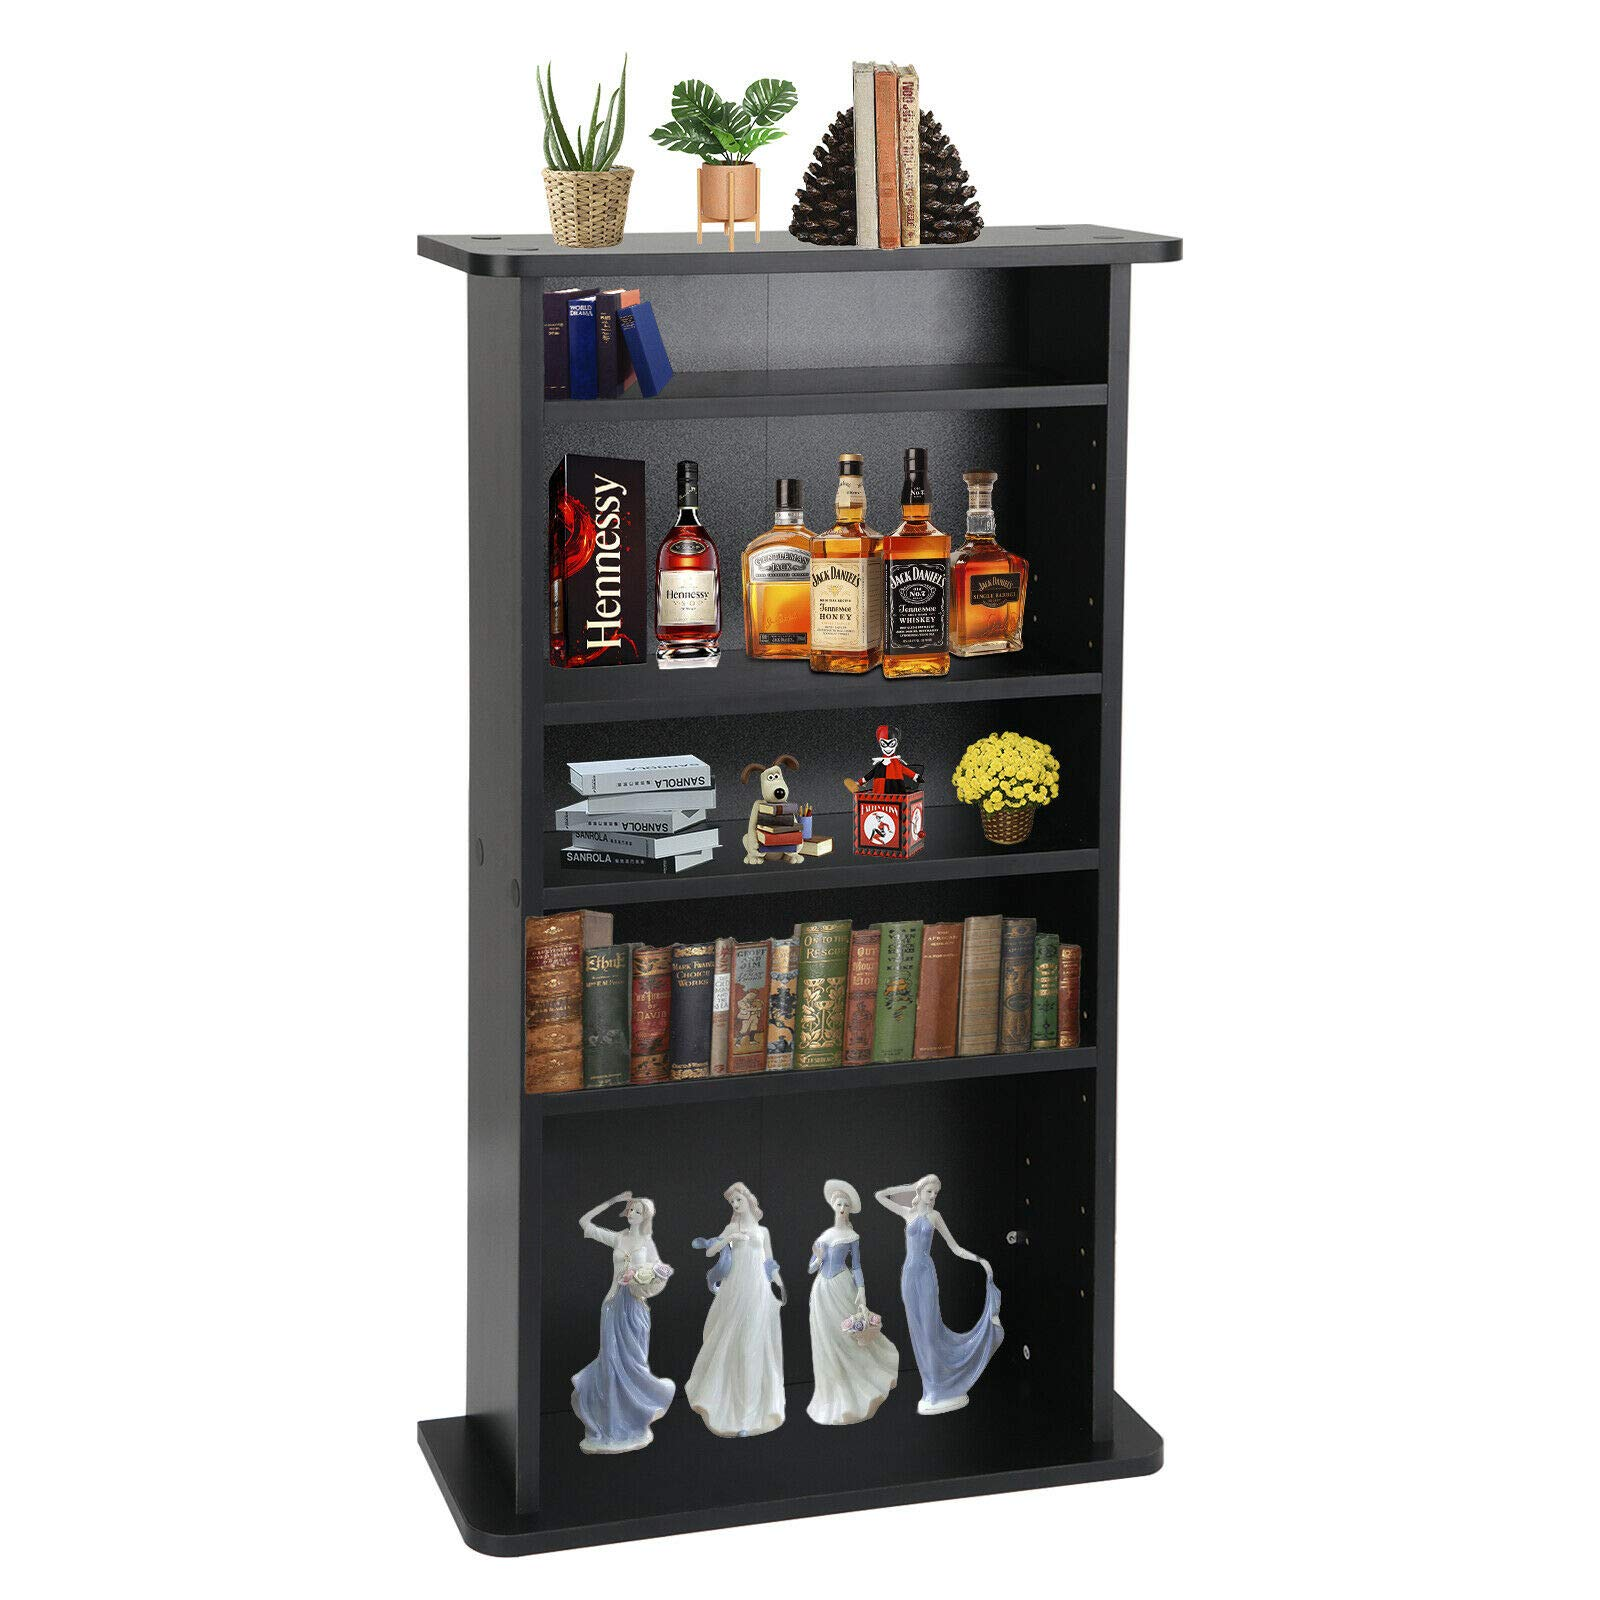 PloybeeShop Height DVD CD This Media Cabinet Storage Adjustable 5 Layers Stand Free Standing 36'' by PloybeeShop (Image #3)